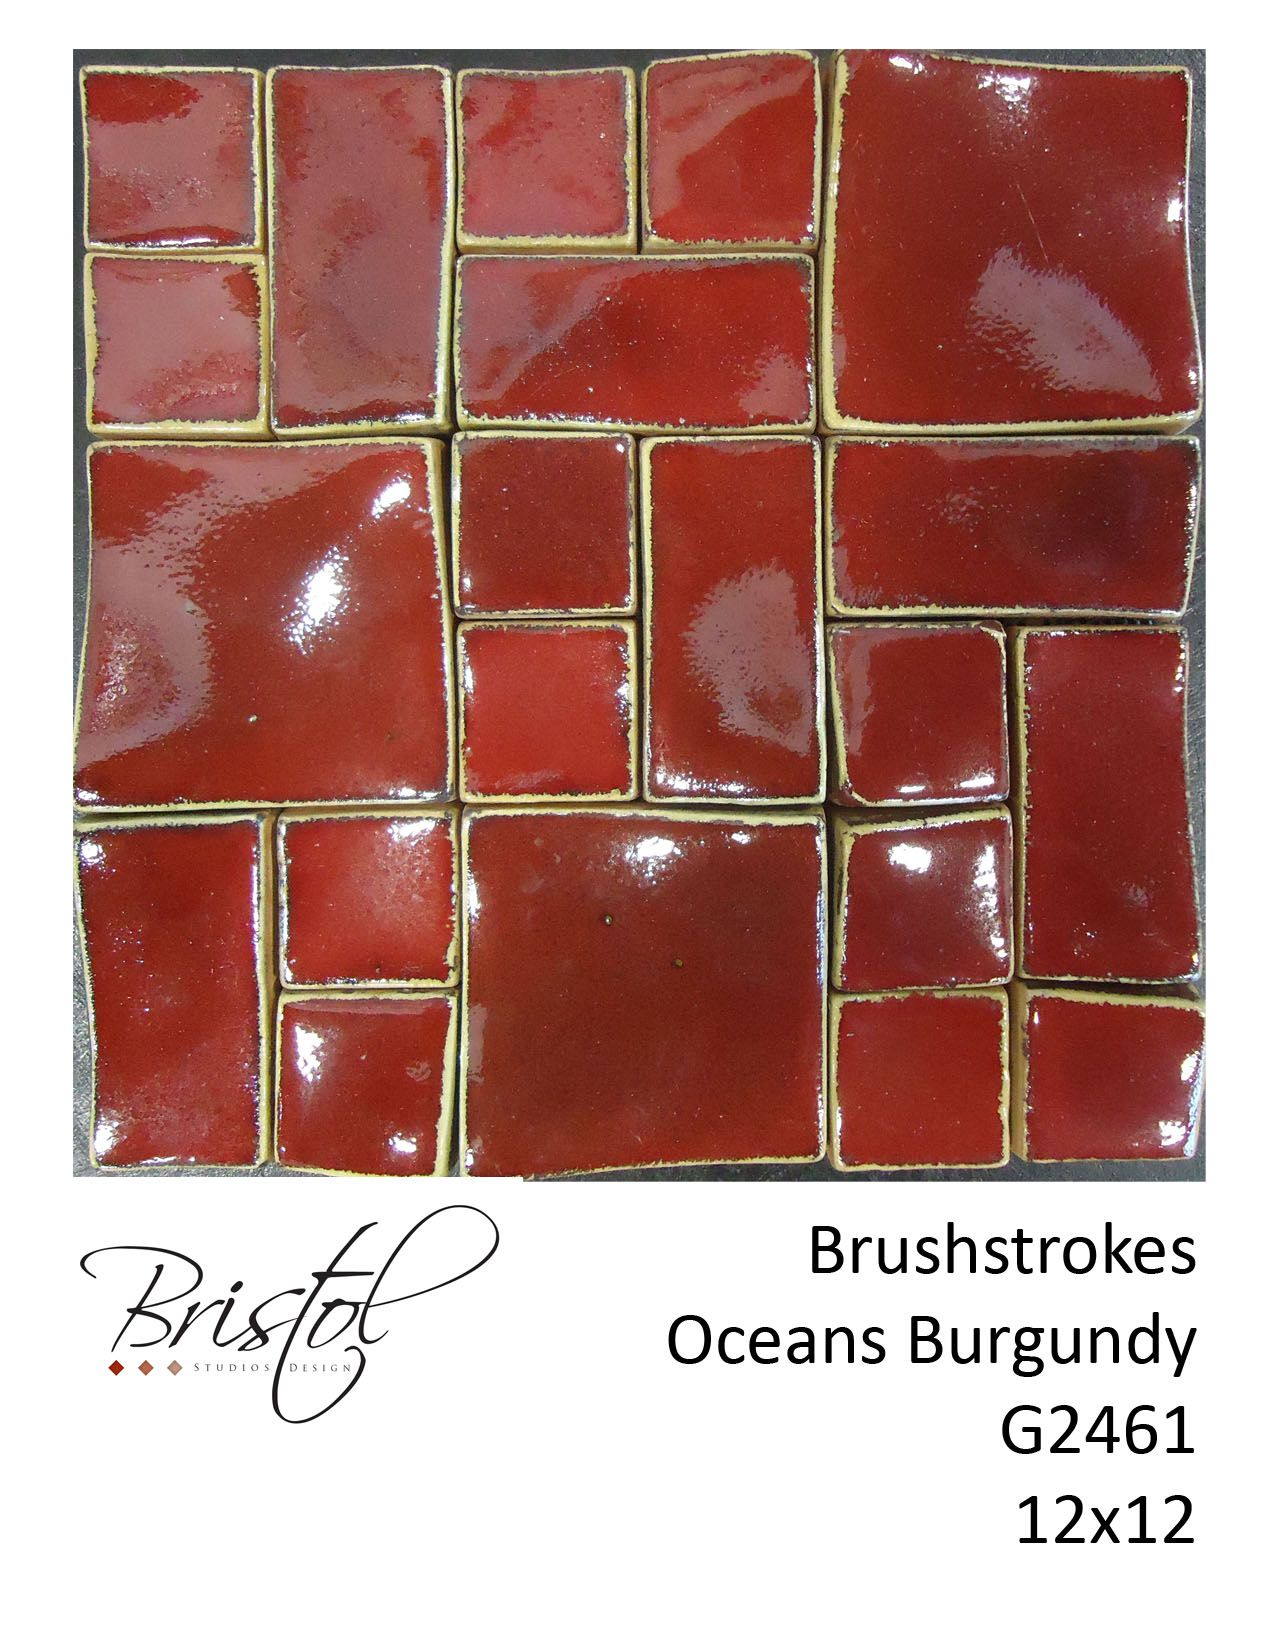 Brushstrokes oceans burgundy dimensions handmade ceramic tile brushstrokes oceans burgundy dimensions handmade ceramic tile tuosogno lajolla ceramic handmade doublecrazyfo Image collections